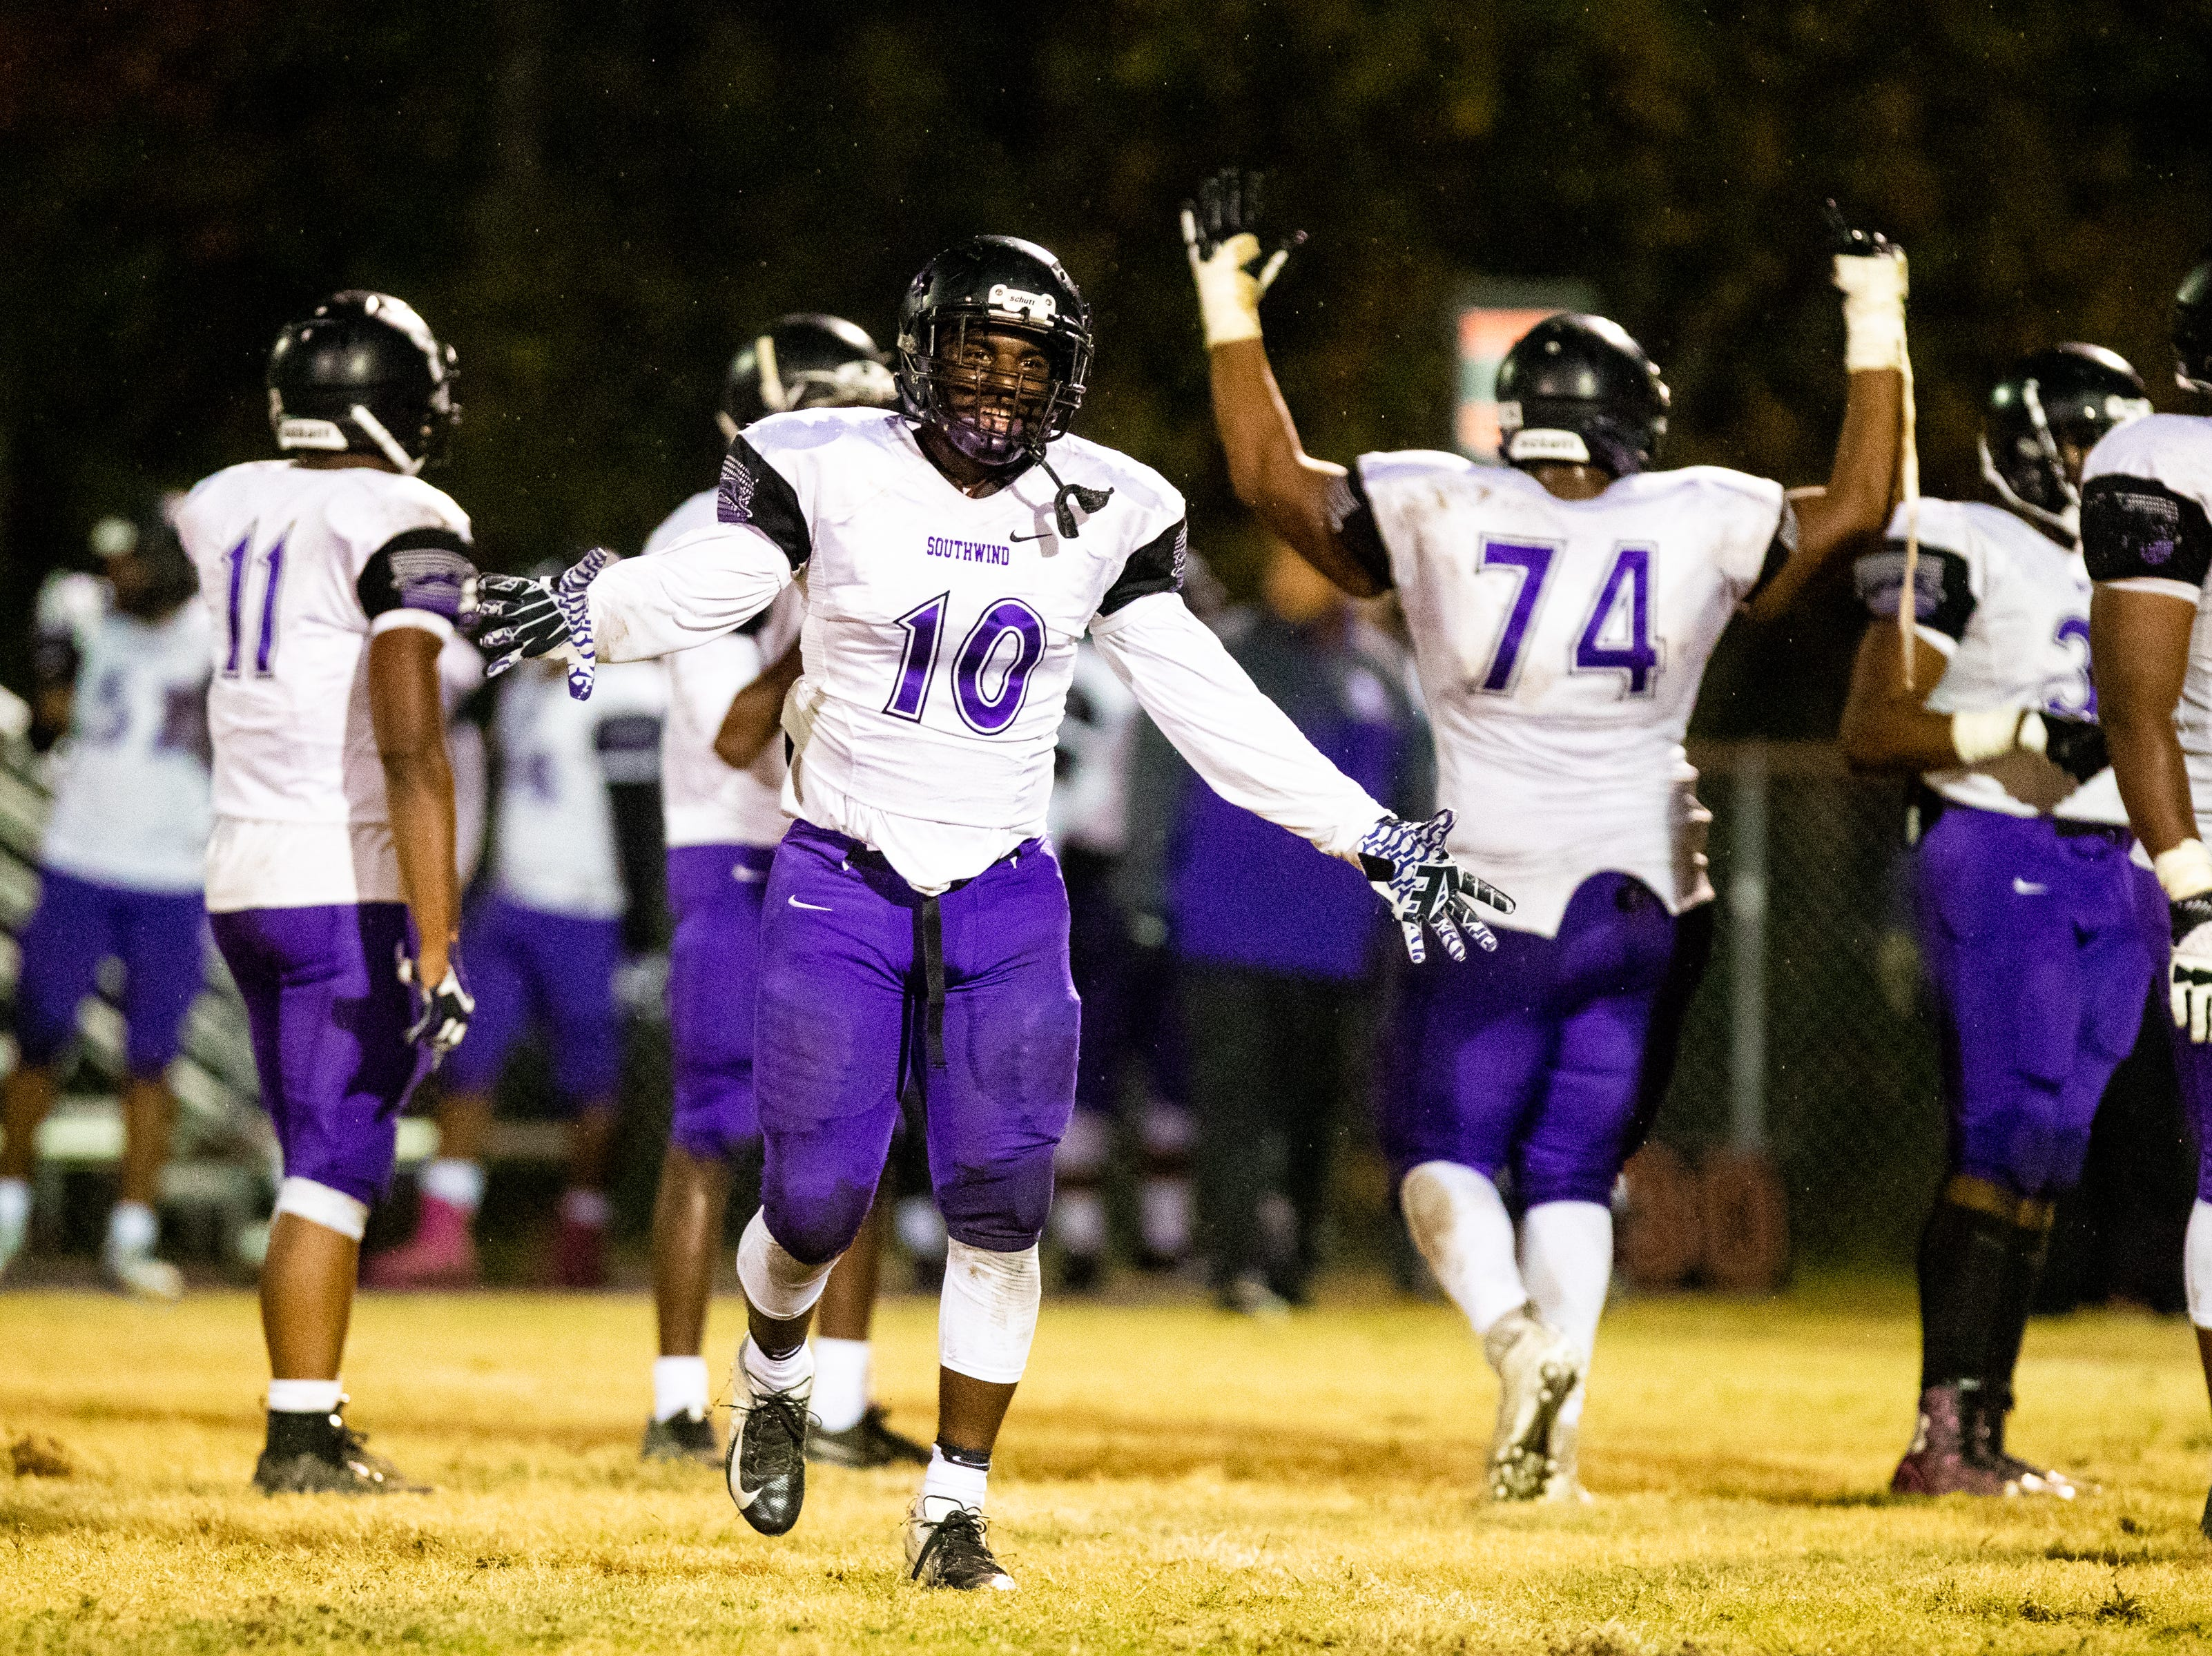 Southwind celebrates before going into the locker room during the first half at Clarksville High Friday, Nov. 2, 2018, in Clarksville, Tenn.